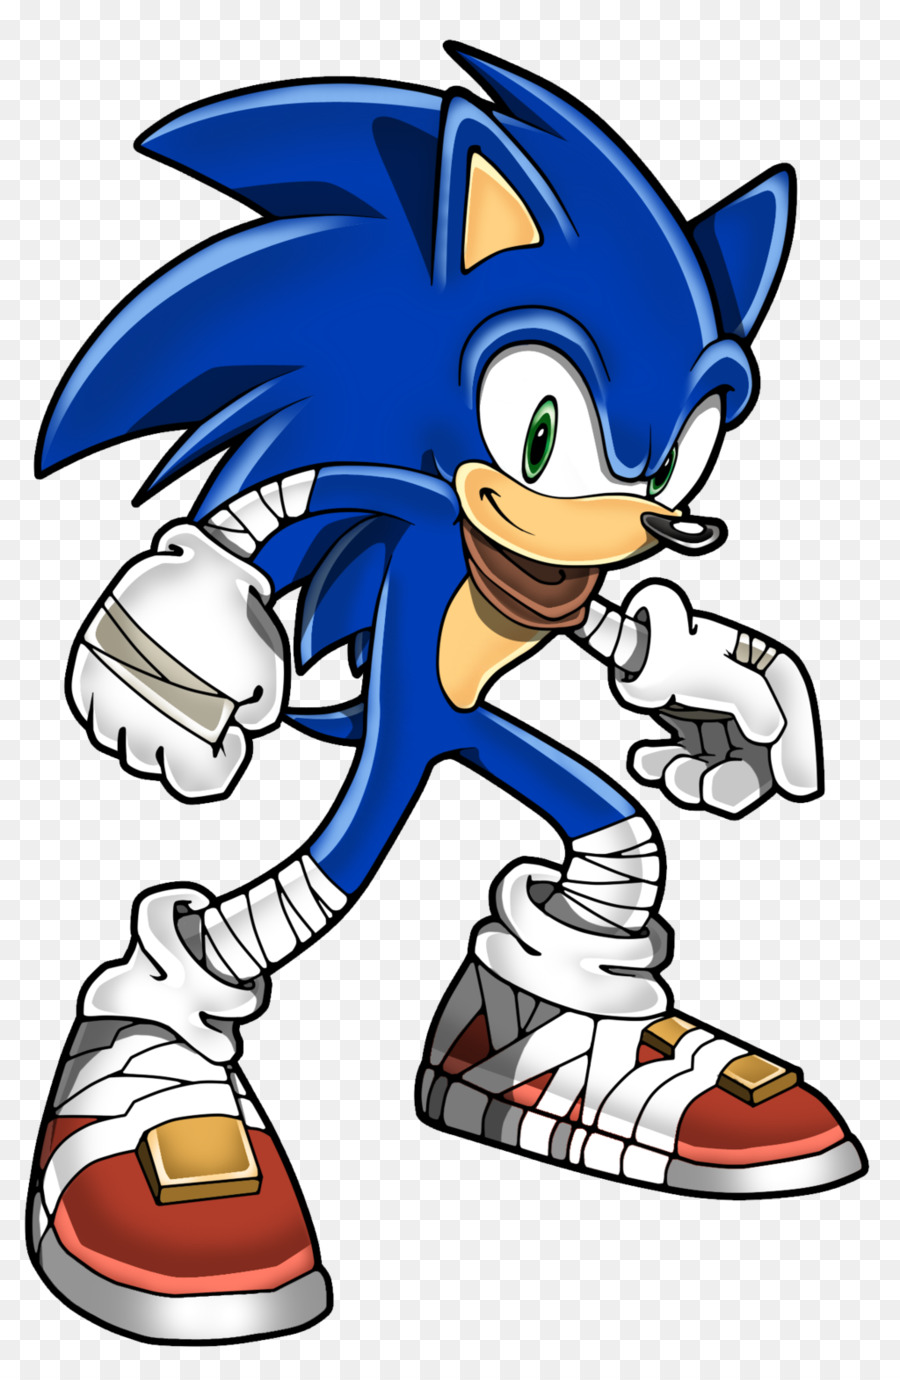 Sonic boom clipart picture royalty free stock Sonic Boom clipart - Cartoon, Line, Graphics, transparent ... picture royalty free stock